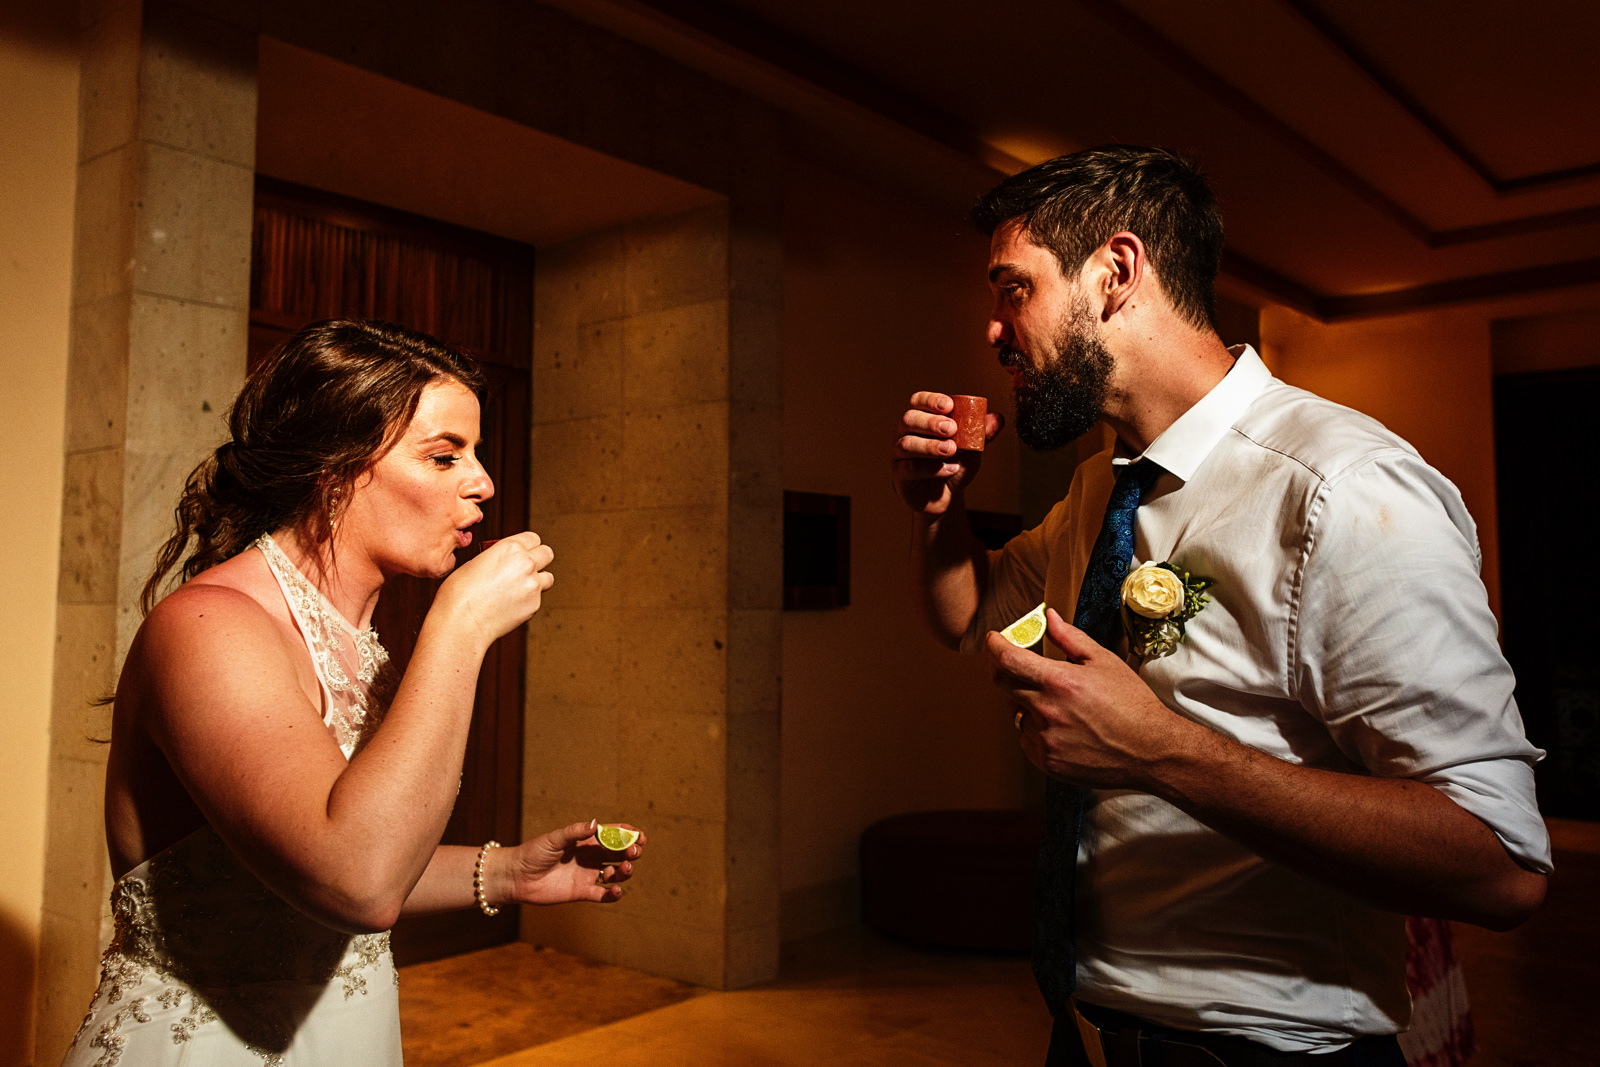 Groom and bride about to drink a tequila shot, while holding  a slice of lime on the other hand.